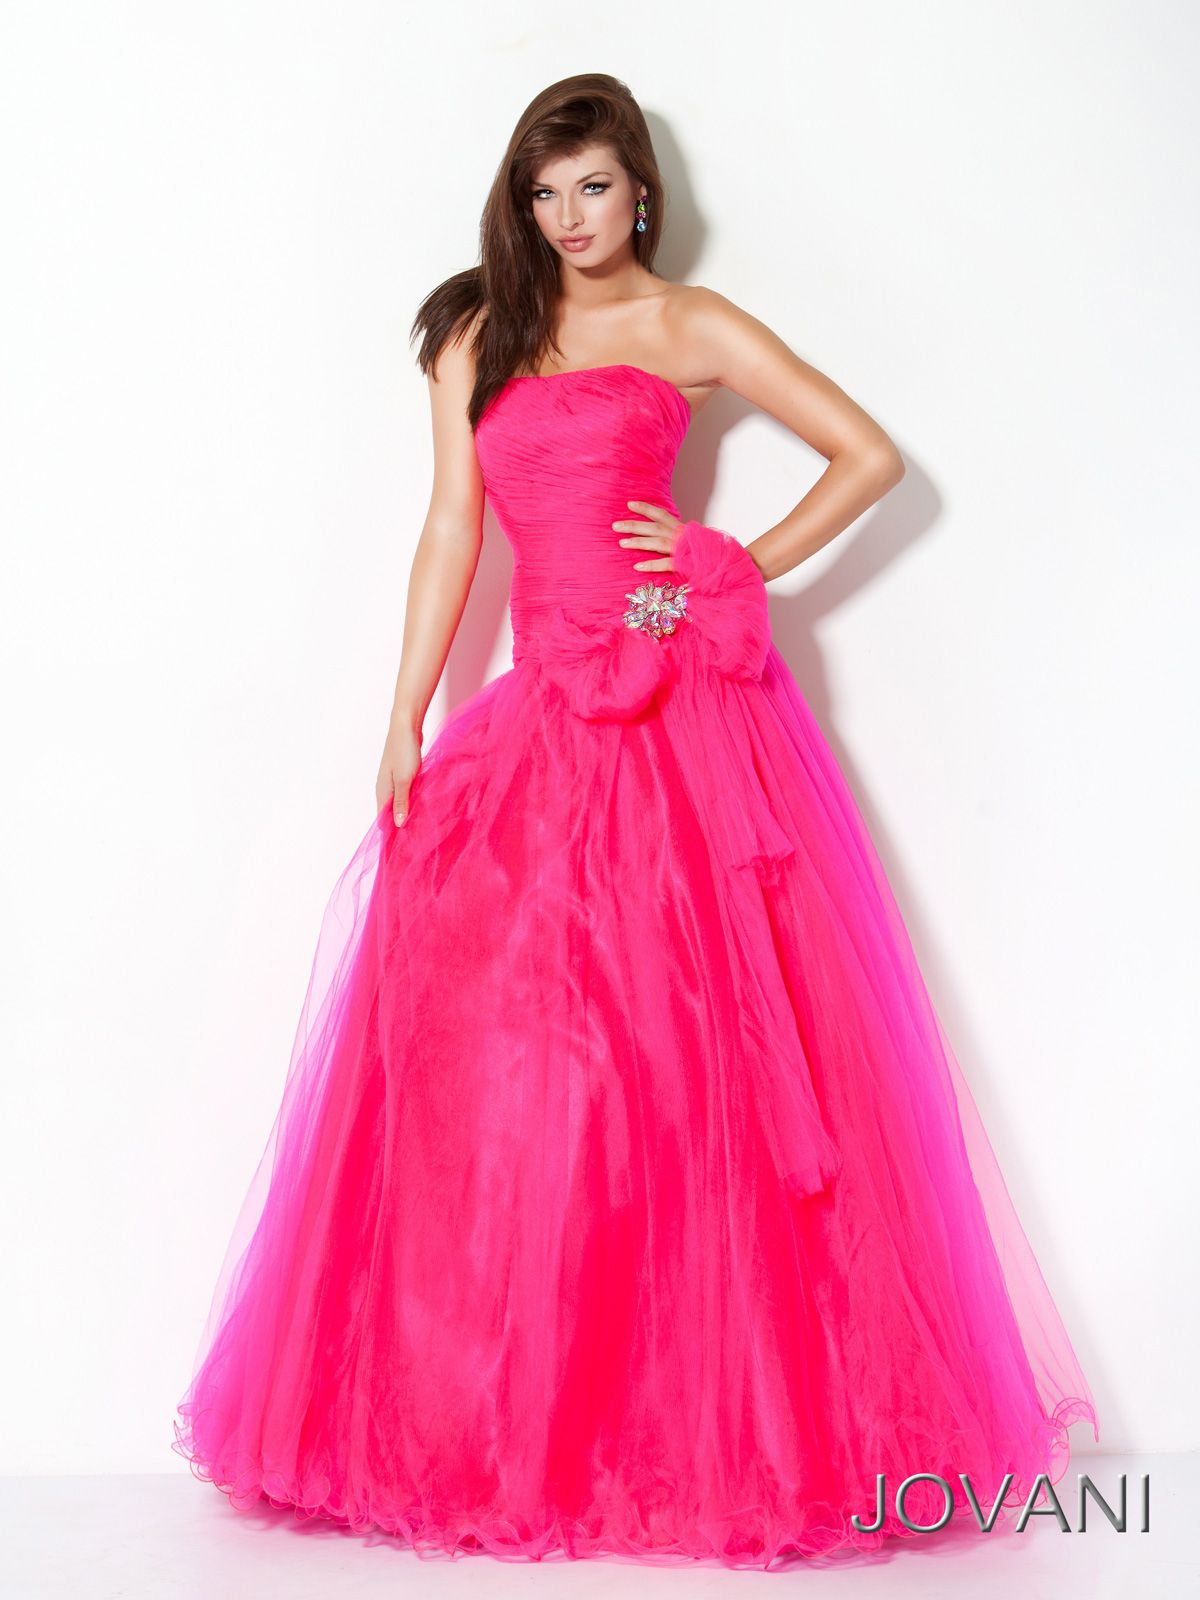 Princess style pageant evening gown Jovani 17211. Feel like a real ...